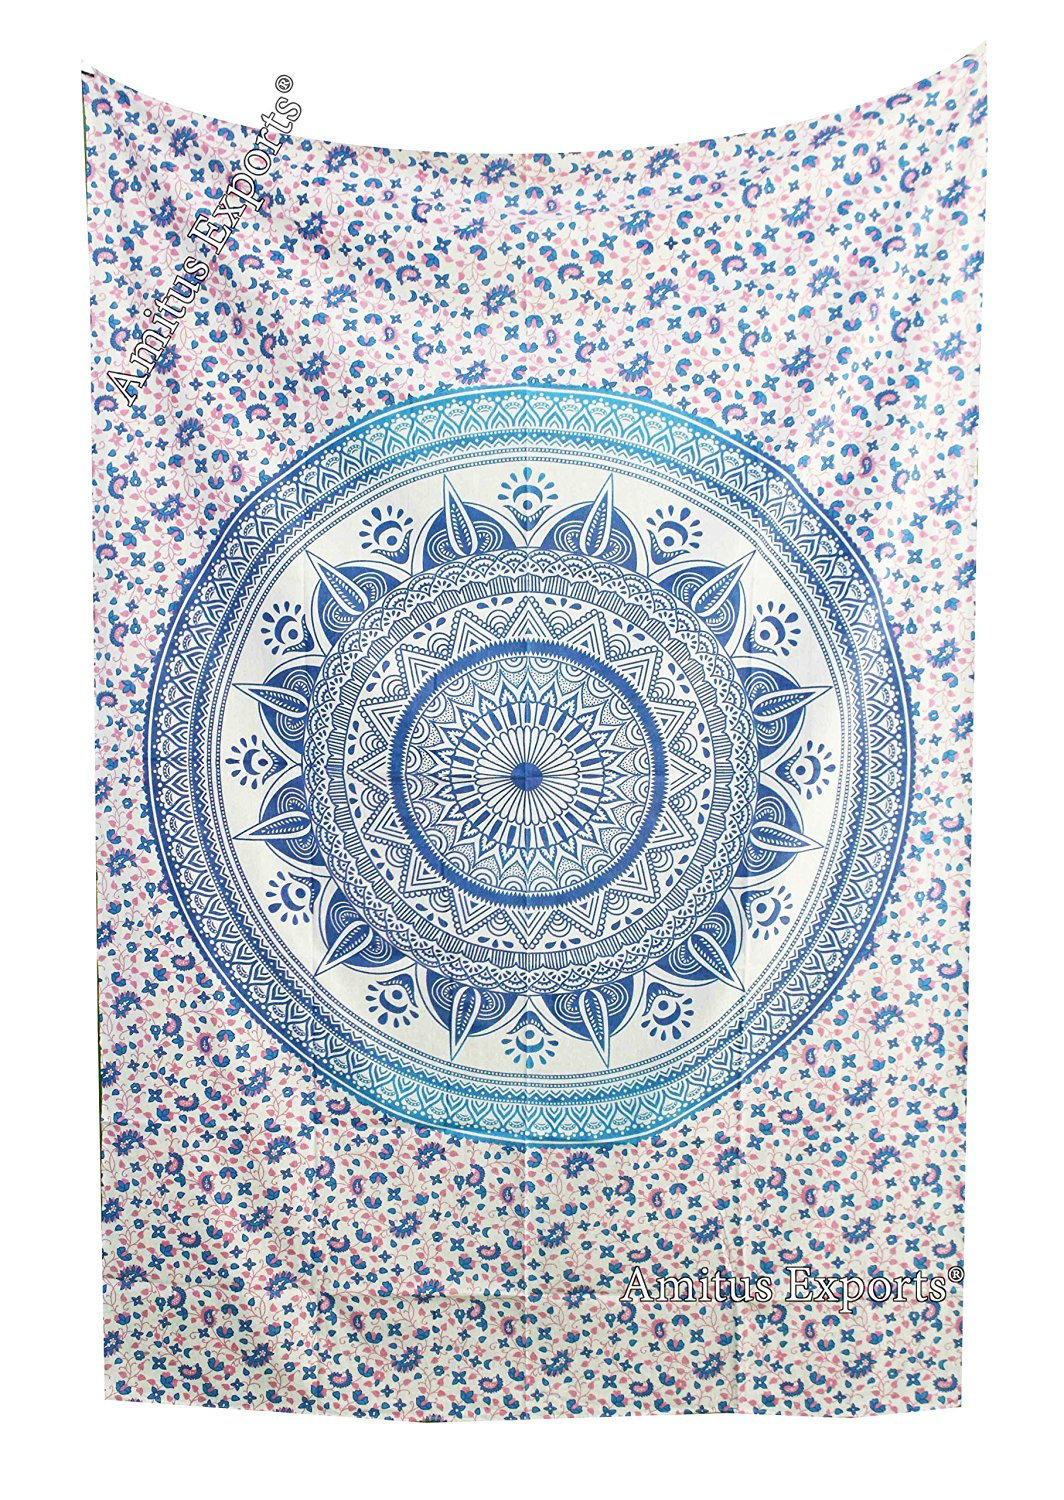 """Amitus Exports 1 X Dome Ombre 80""""X53"""" Approx. Inches Blue Pink With White Background Color Cotton Fabric Multi-Purpose Handmade Tapestry Hippy Indian Mandala Throws Bohemian Tapestries"""